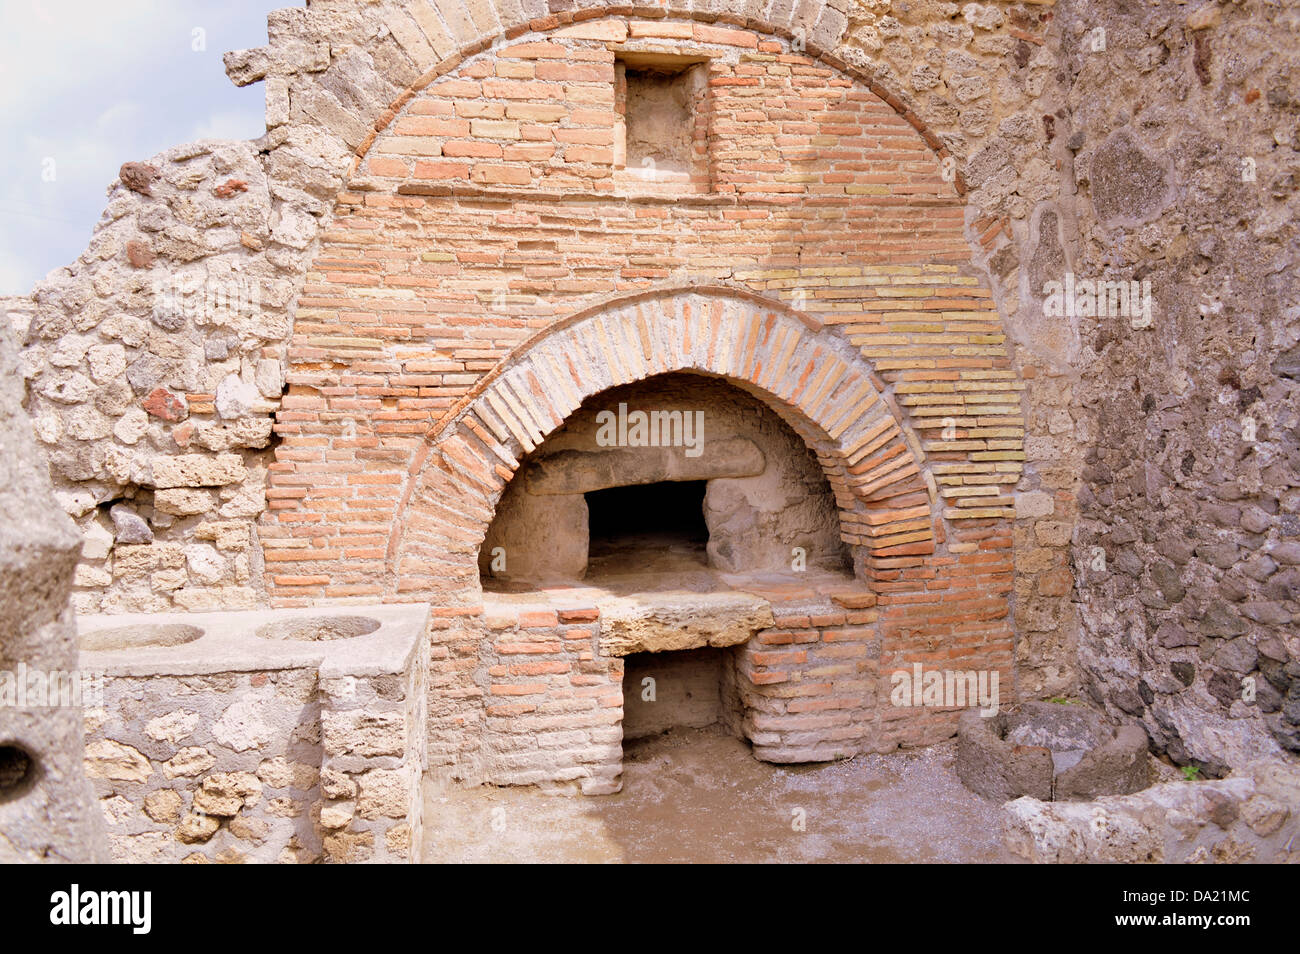 A Bakehouse Oven at Pompeii - Stock Image